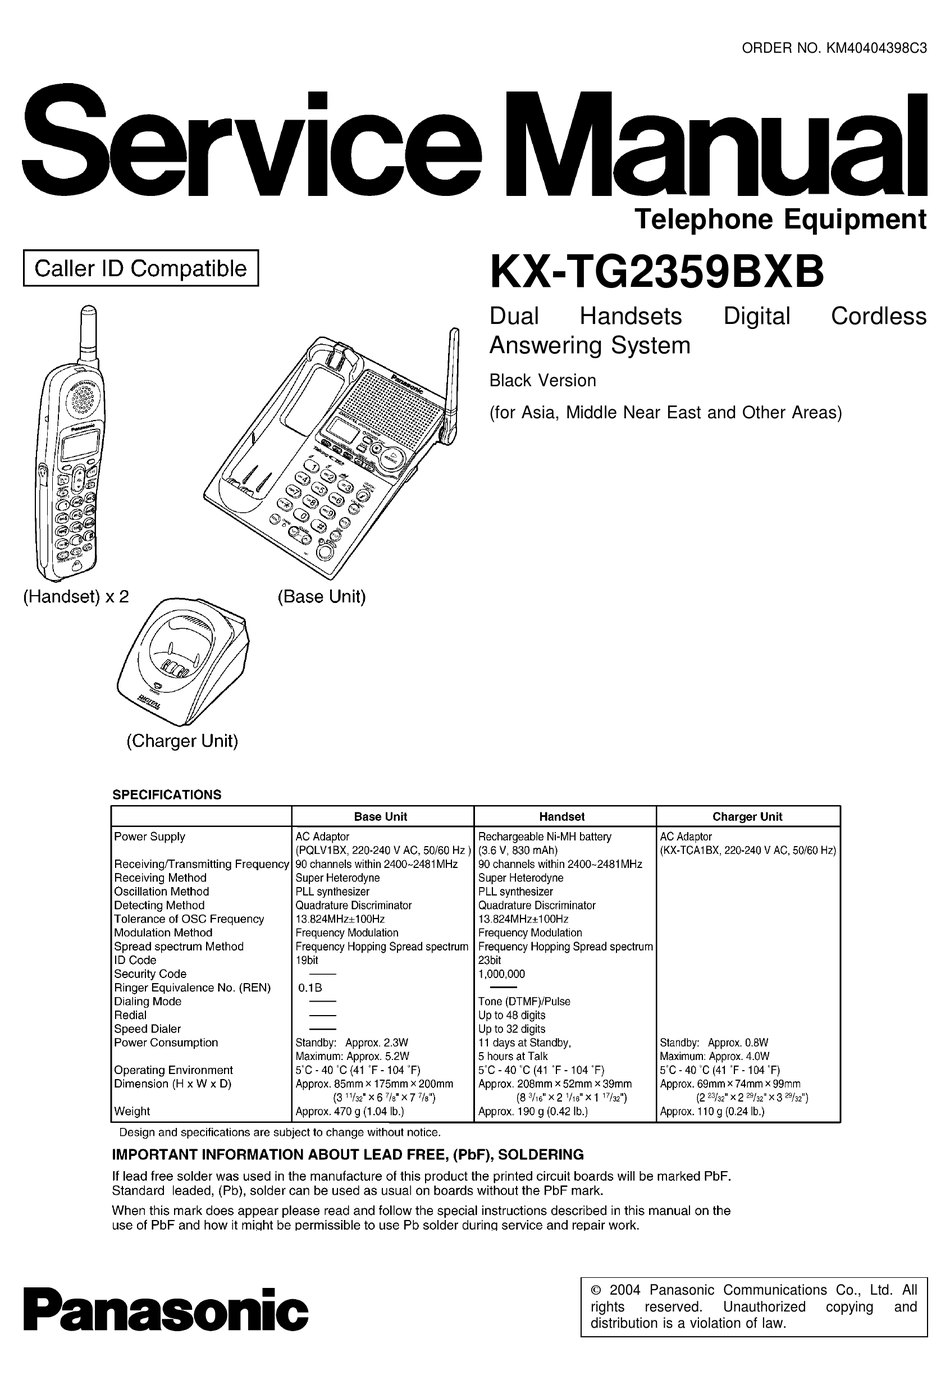 PANASONIC KX-TG2359BXB SERVICE MANUAL Pdf Download